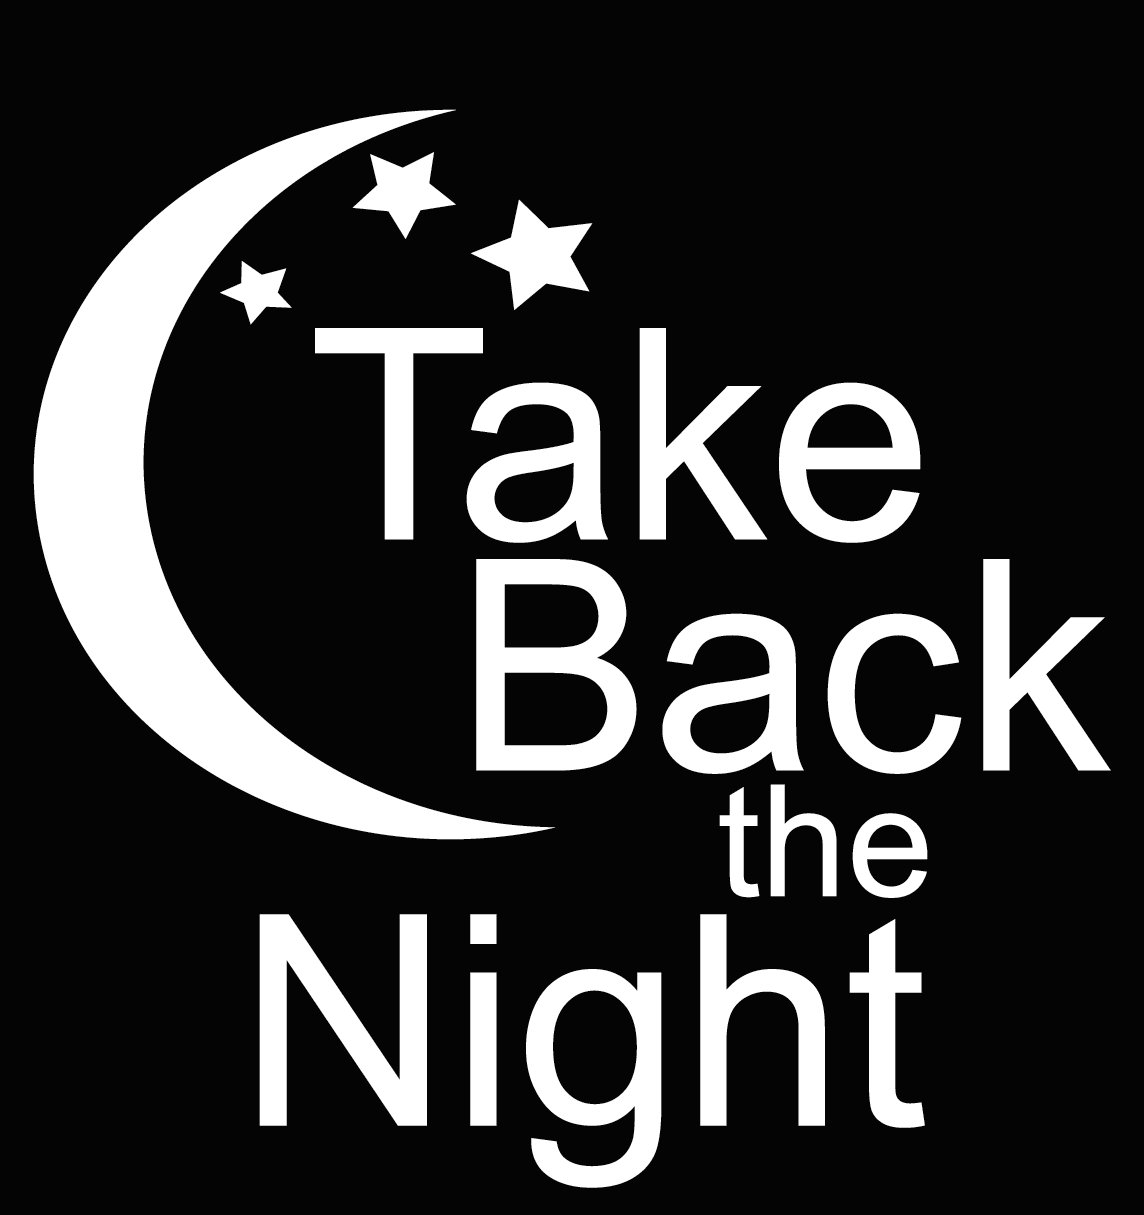 take back the night essay Brian mitchell february 3, 2015 take back the night english 100 m kuromato in our vanishing night, verlyn klinkenborg explains the many issues light pollution has on the earth and its inhabitants.